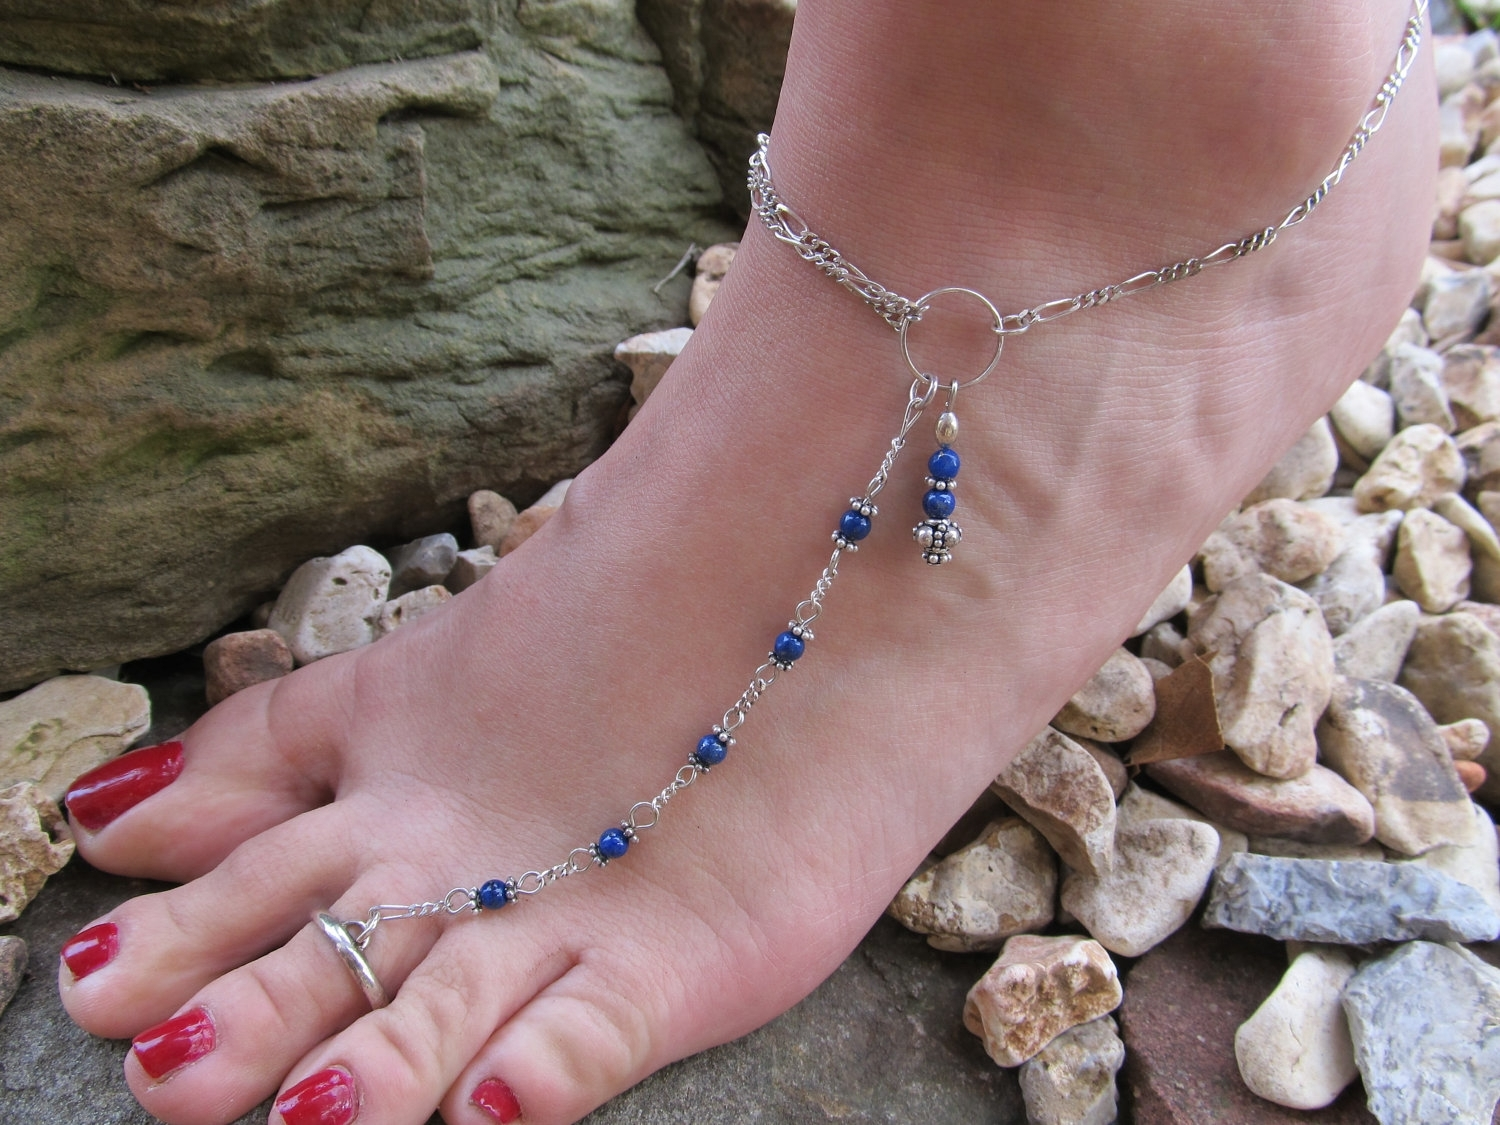 Anklet Deep Blue Lapis Sterling Silver Ankle Bracelet Toe Ring Intended For 2018 Ankle Bracelet Toe Rings (Gallery 1 of 25)